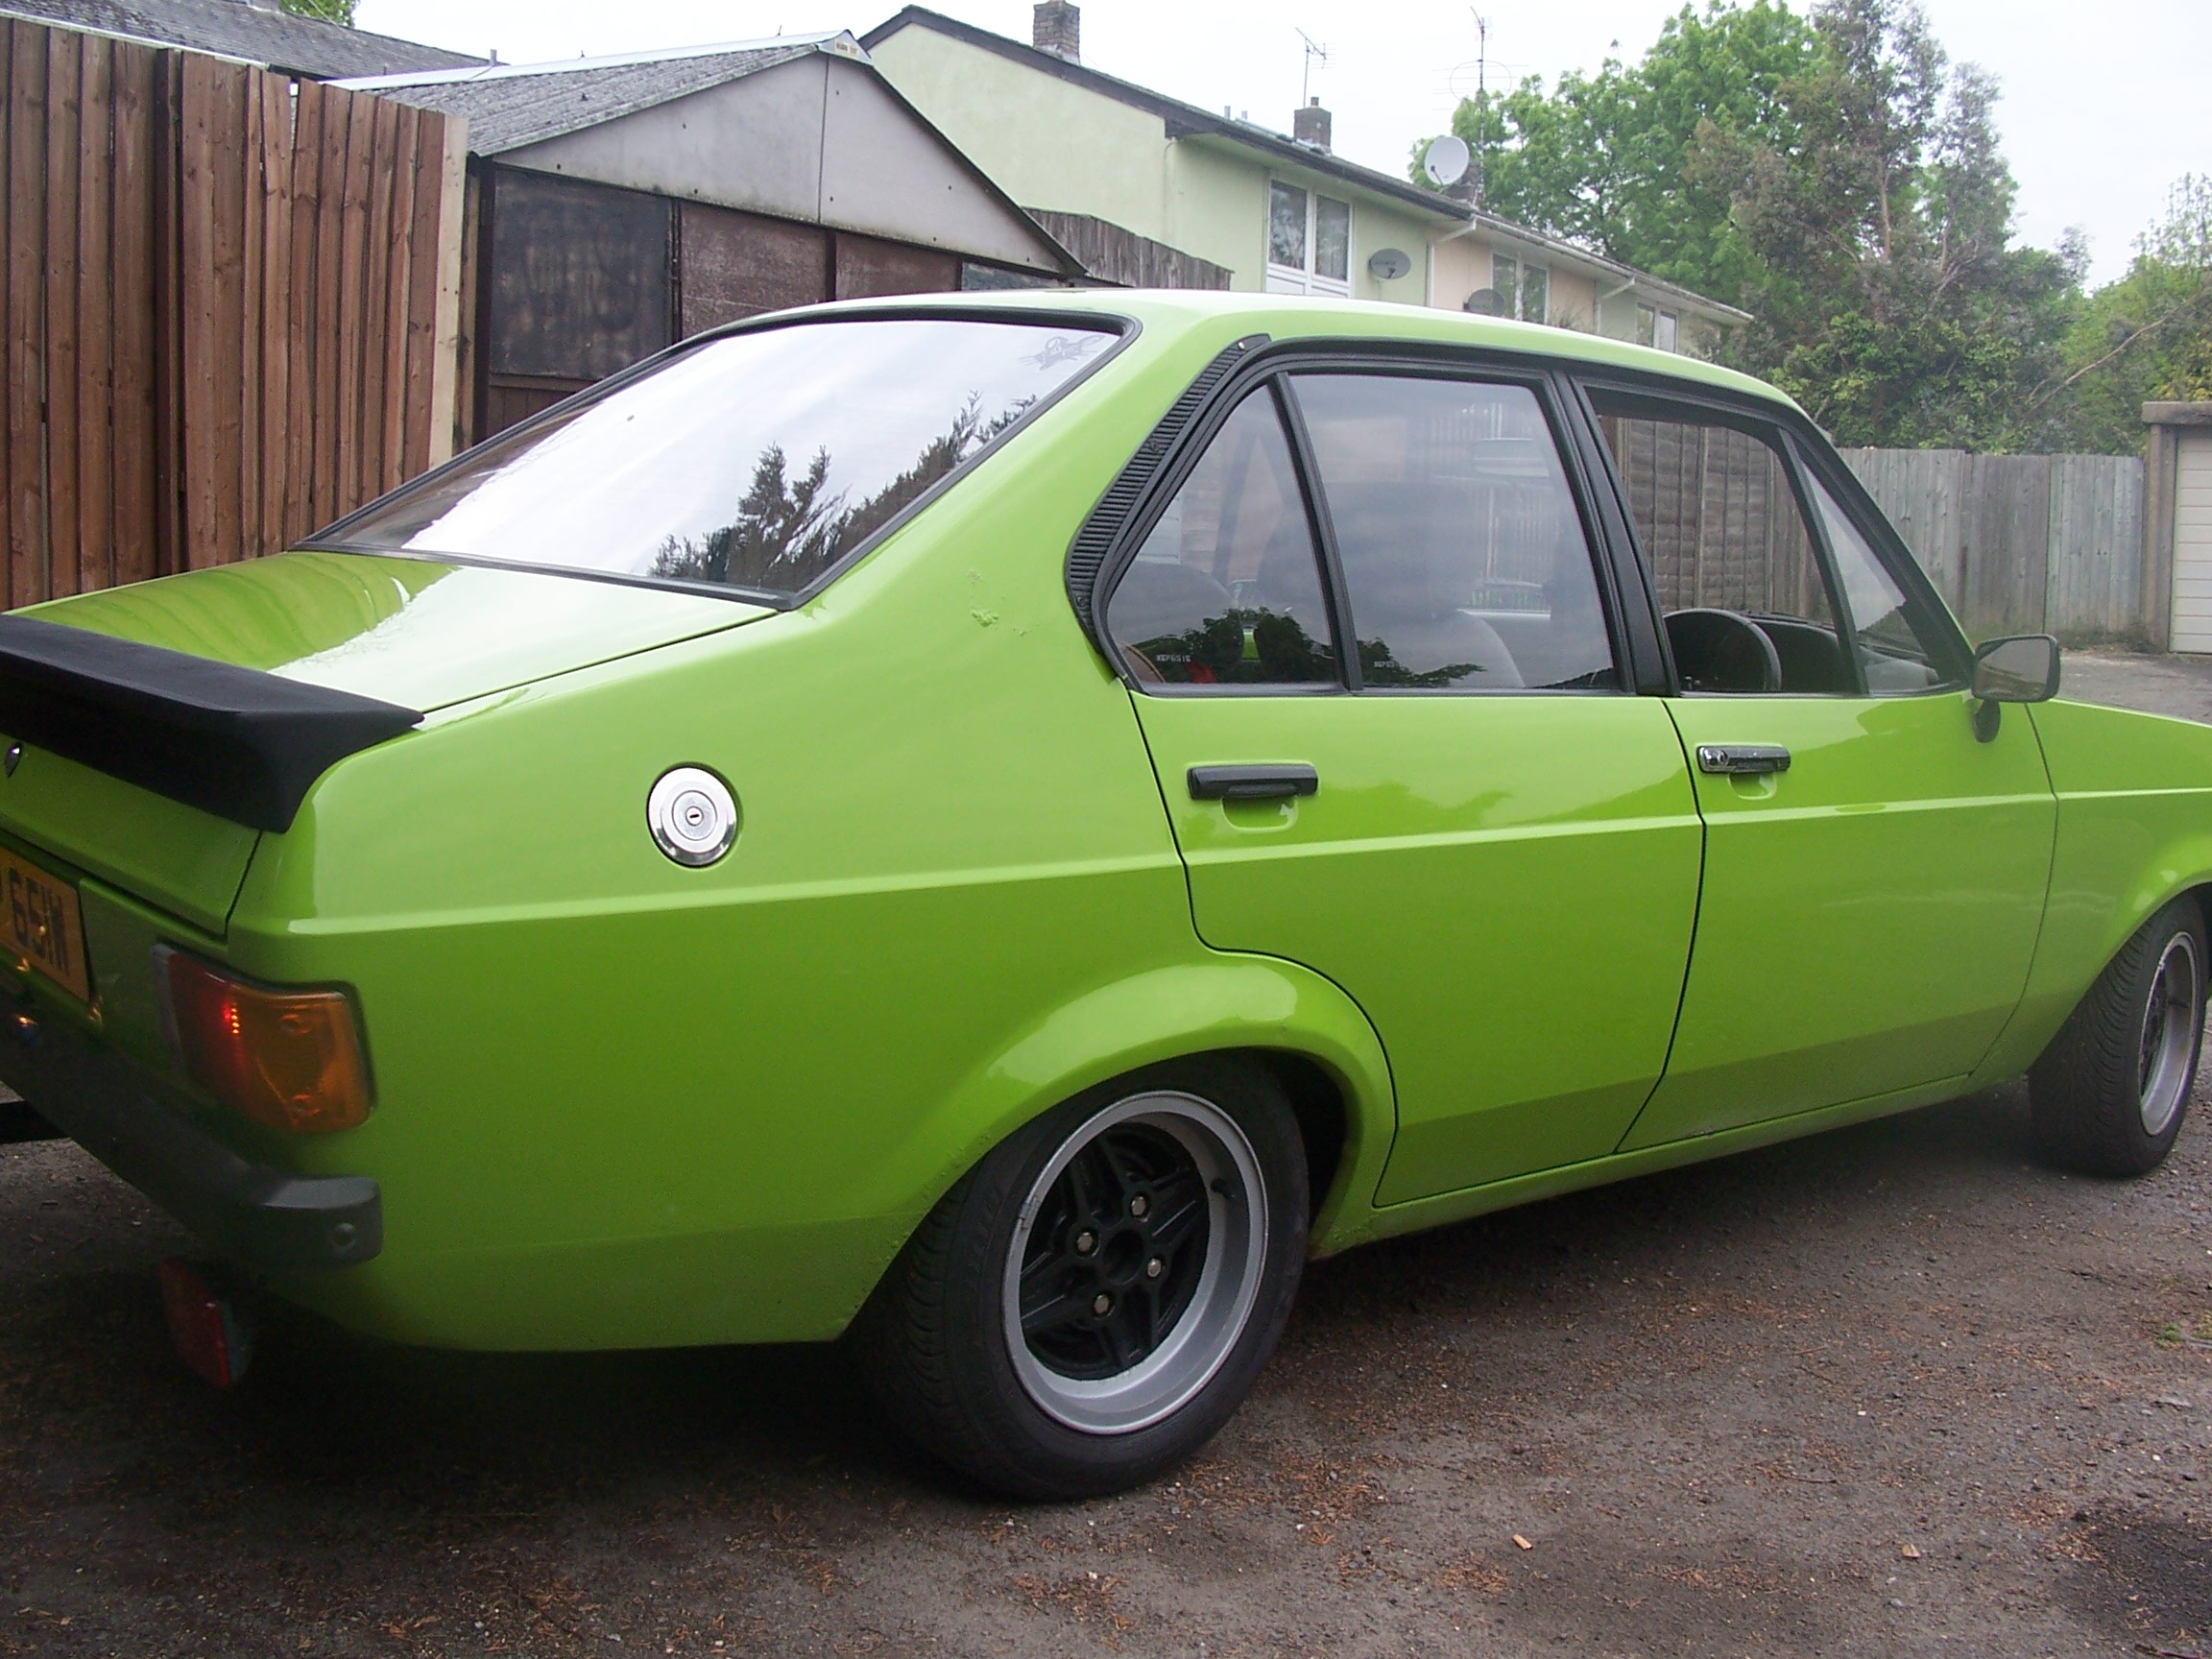 Awesome Mk2 Escort For Sale Uk Contemporary - Classic Cars Ideas ...